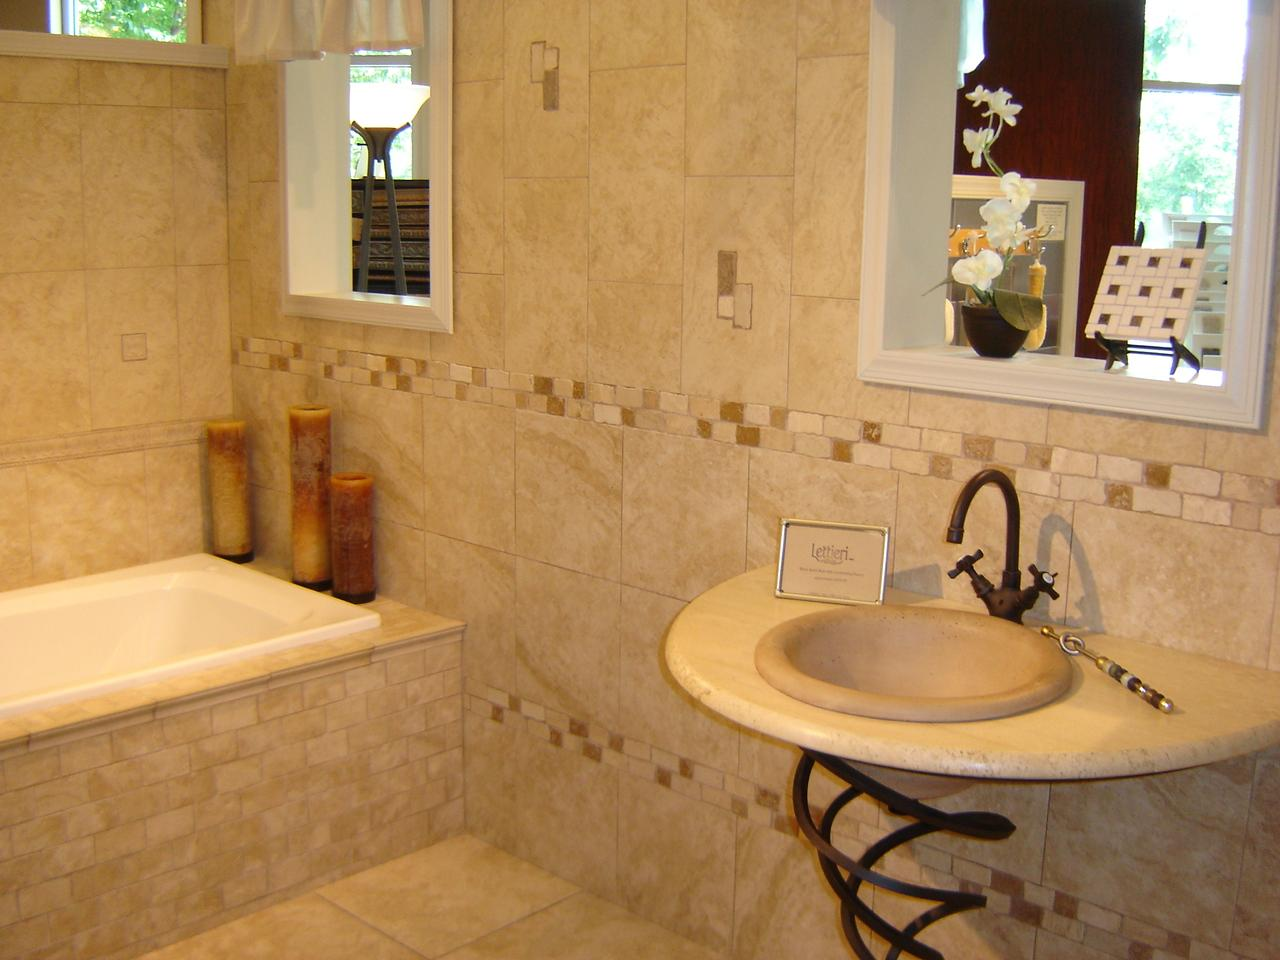 Bathroom tile design ideas for Bathroom tile flooring designs